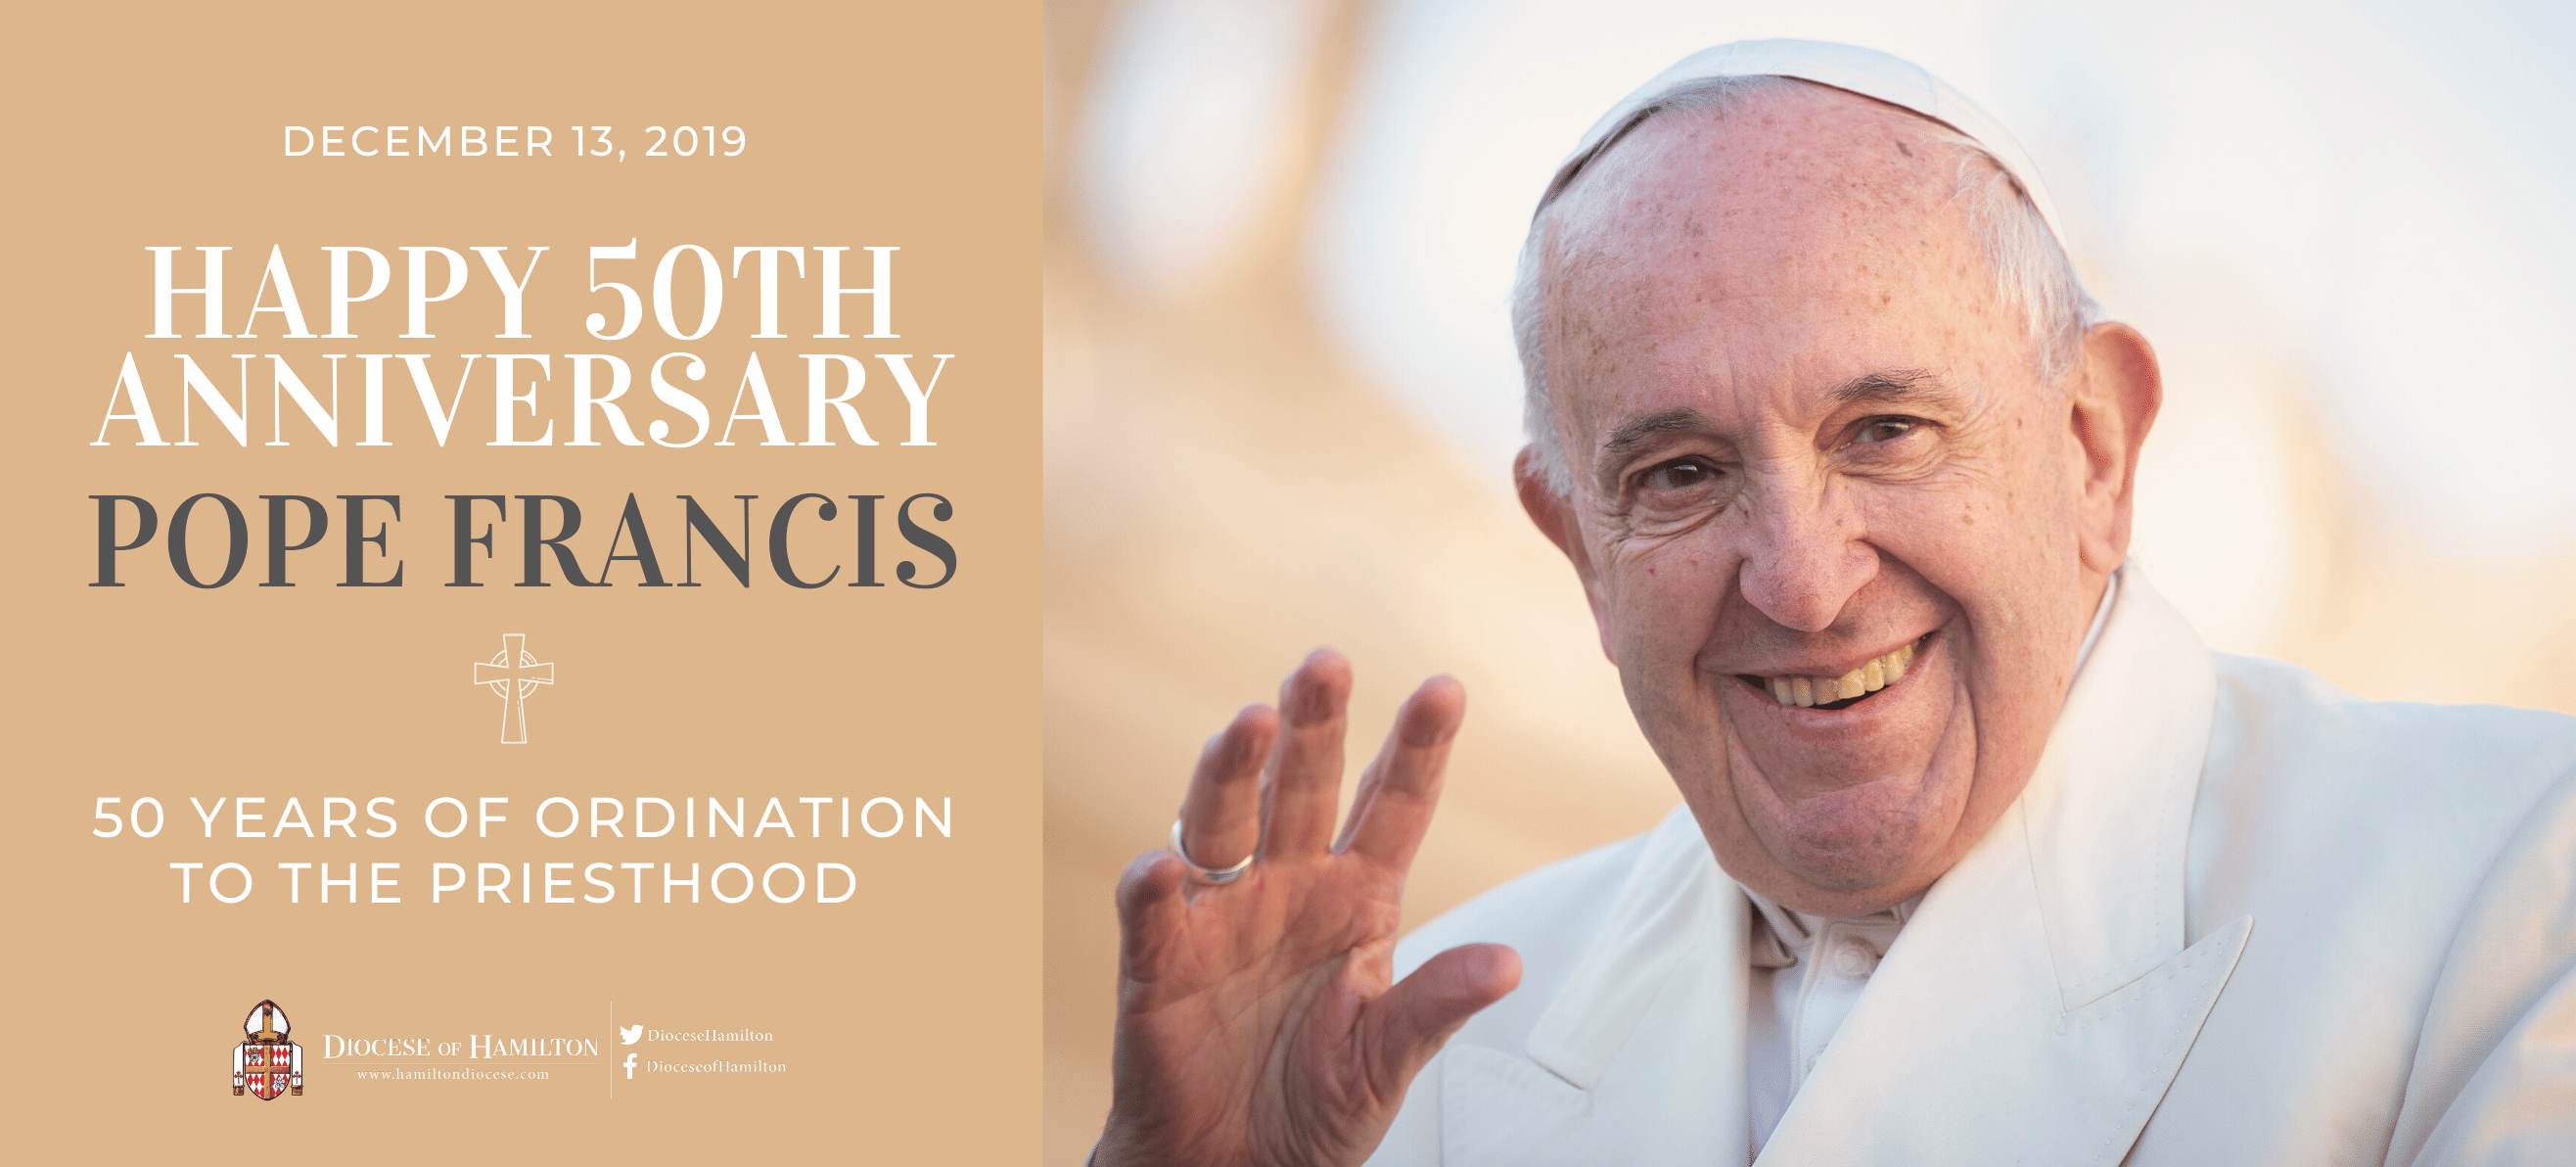 Happy 50th Anniversary, Pope Francis!